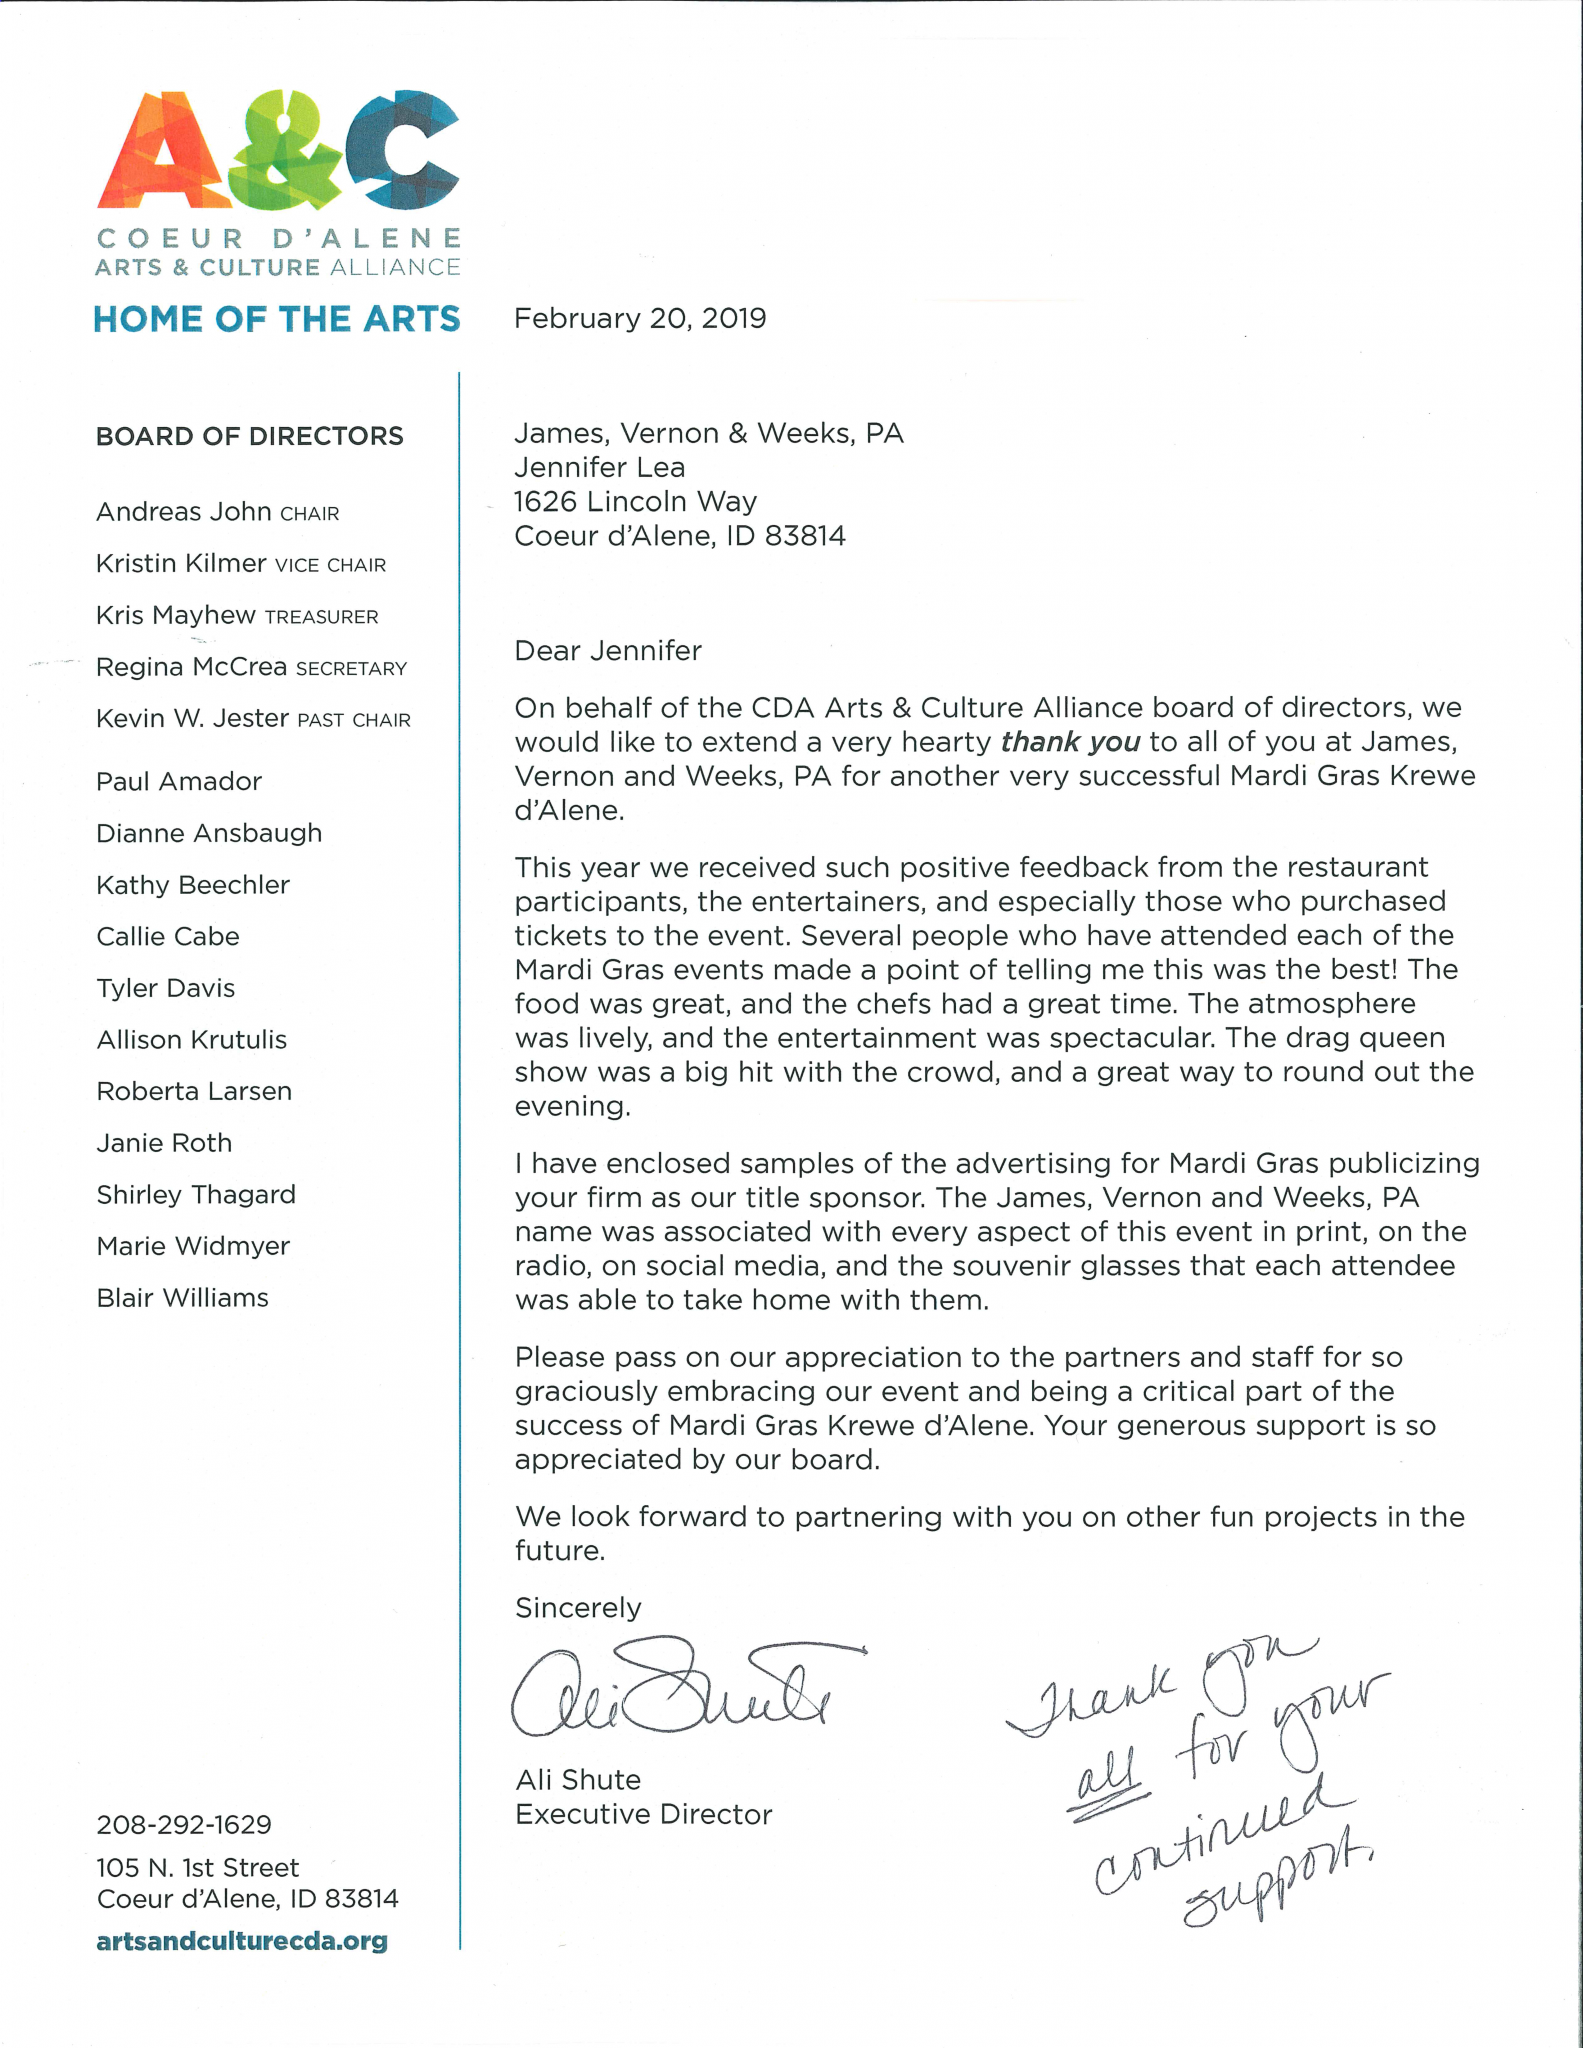 Letter from Arts and Culture CDA Thanking JVW